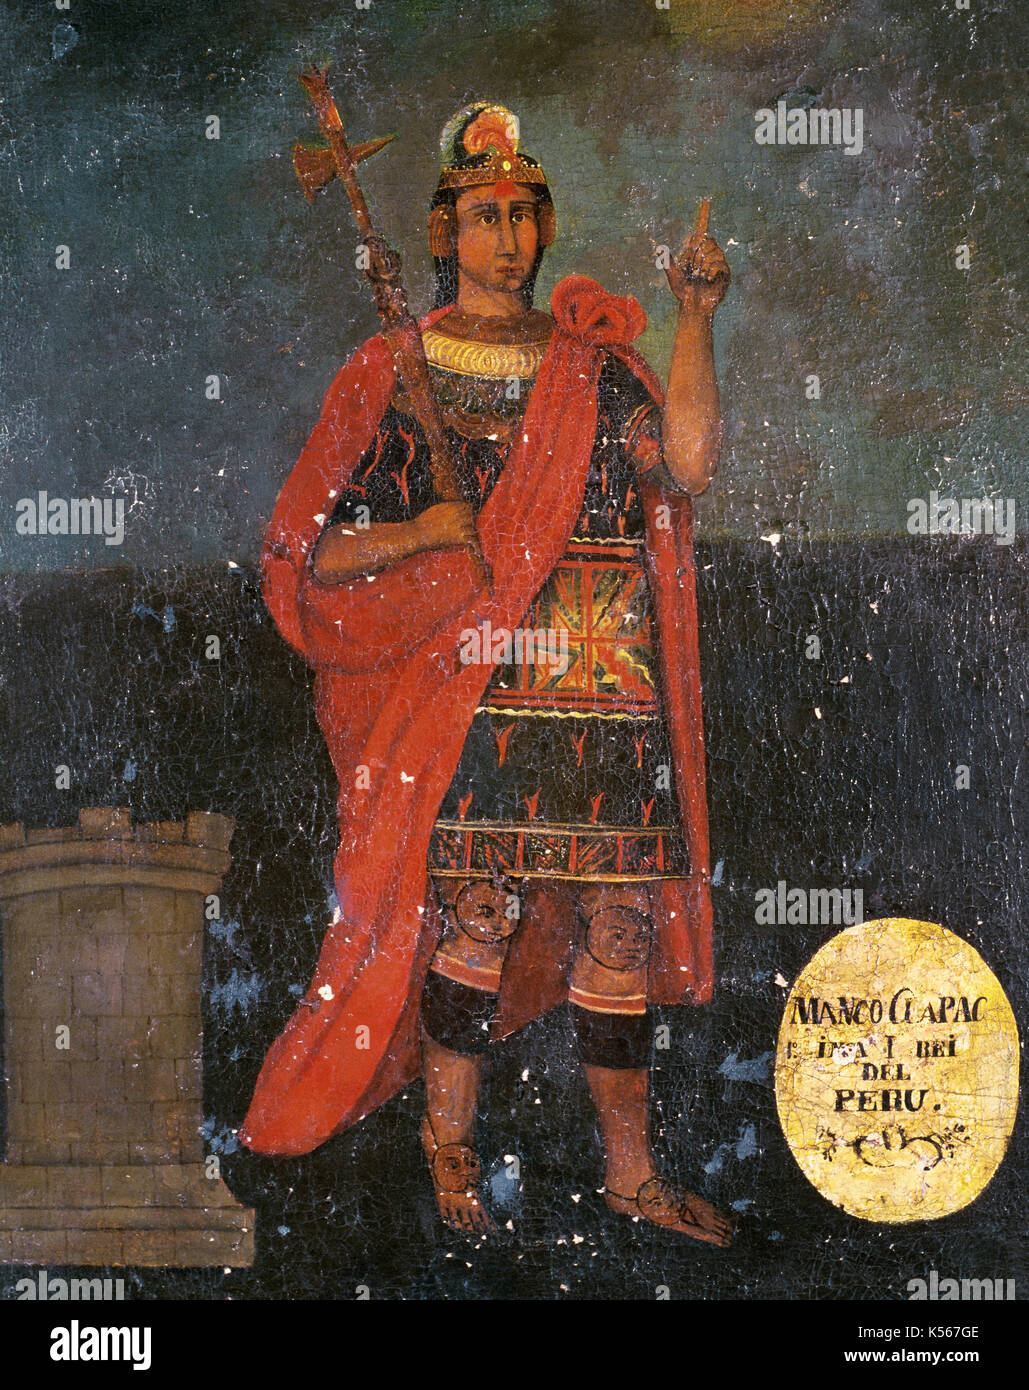 Manco Capac (13th century). First governor and founder of the Inca civilization. Anonymous painting. - Stock Image